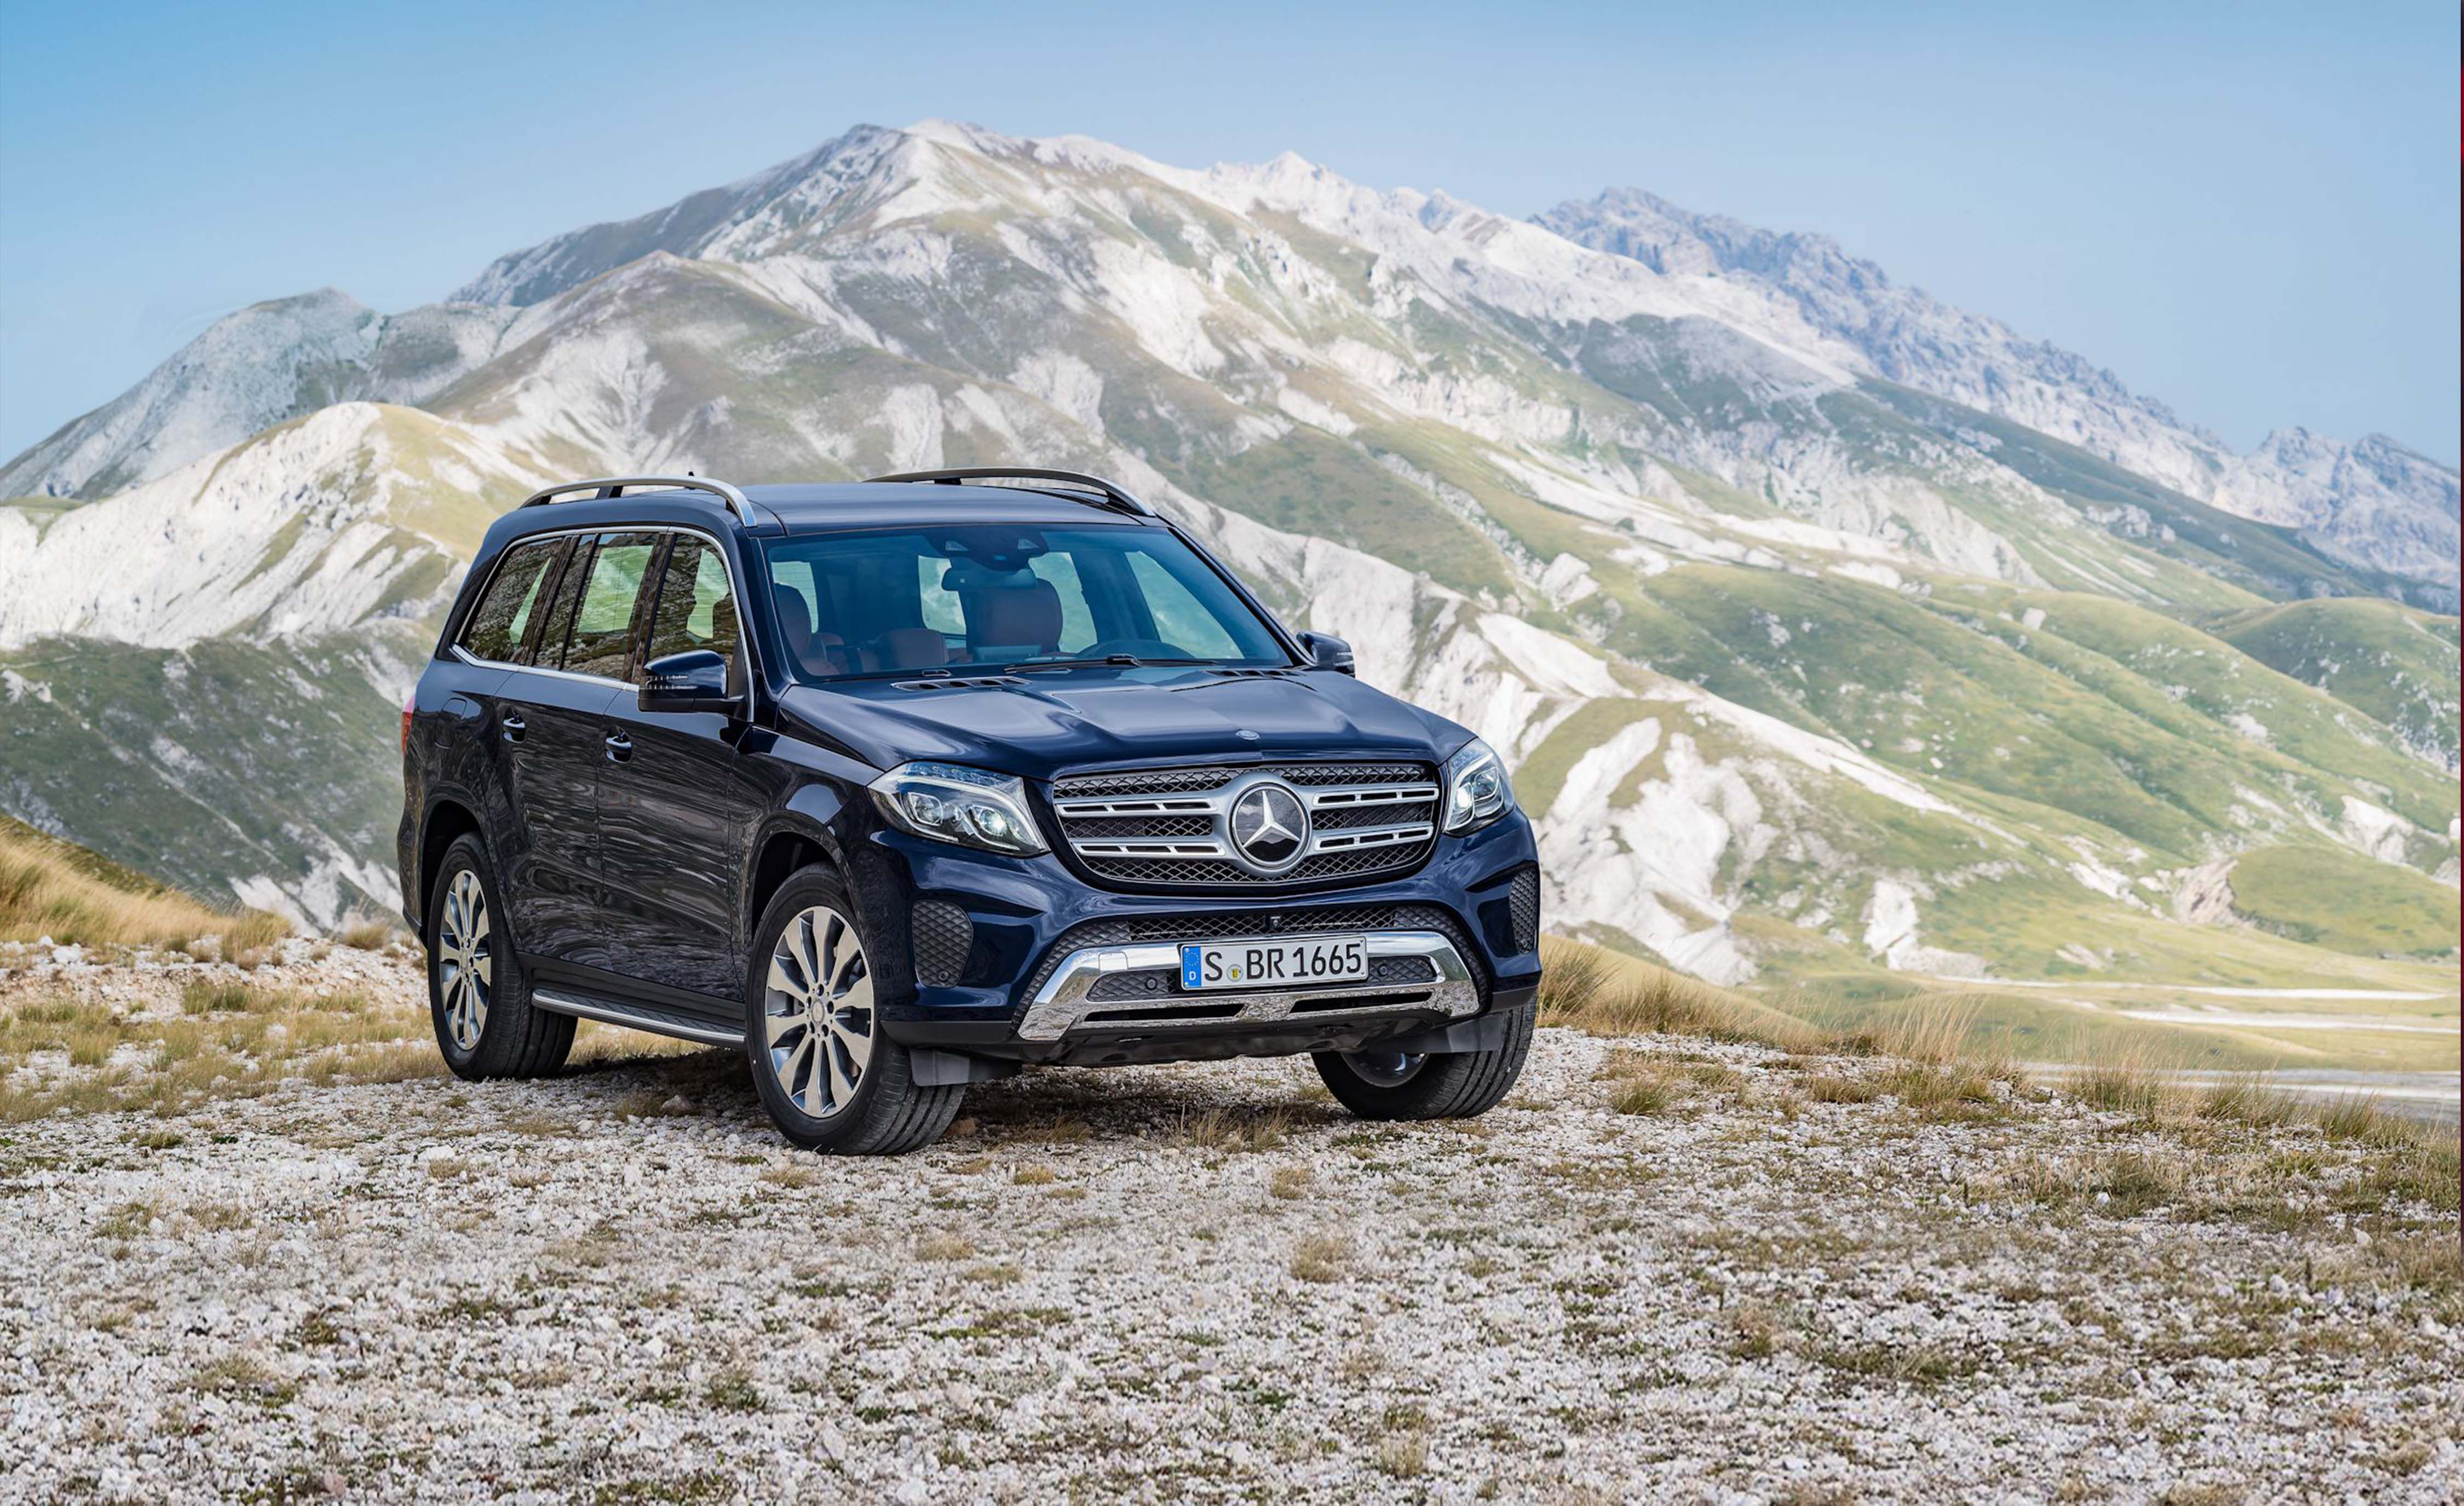 98 The Best 2020 Mercedes Gl Class Rumors